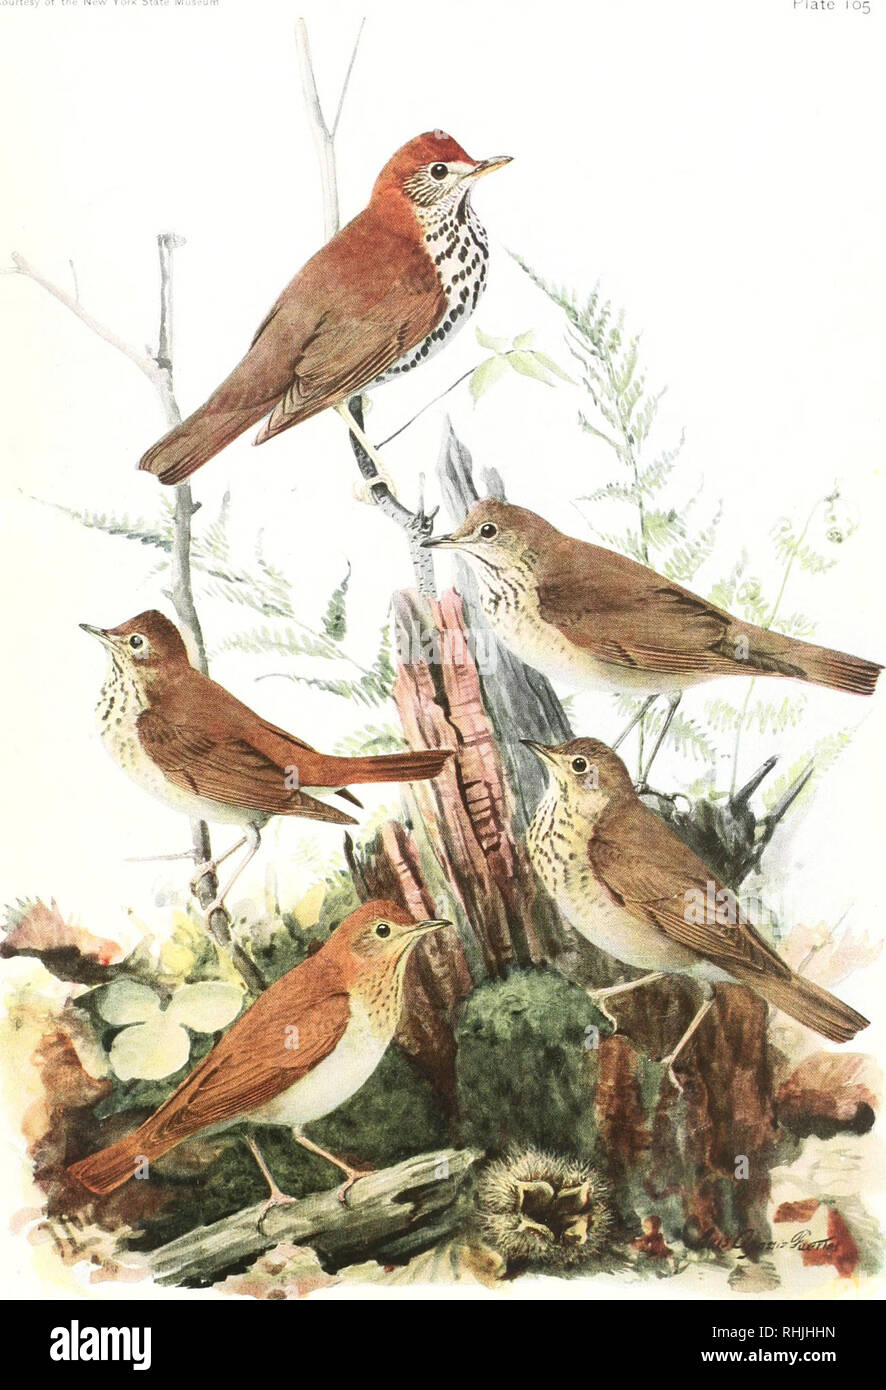 """. Birds of America;. Birds -- North America. Courtesy of the New York State M Plate 105. GRAY-CHEEKED THRUSH !hii.u""""ld"""" ,il,r:"""", ,il,,-,"""",' iH:iinI OLIVE-BACKED THRUSH lllllacirhla uMn'ata siminsuia (TM-hudi). Please note that these images are extracted from scanned page images that may have been digitally enhanced for readability - coloration and appearance of these illustrations may not perfectly resemble the original work.. Pearson, T. Gilbert (Thomas Gilbert), 1873-1943. New York, The University Society Stock Photo"""